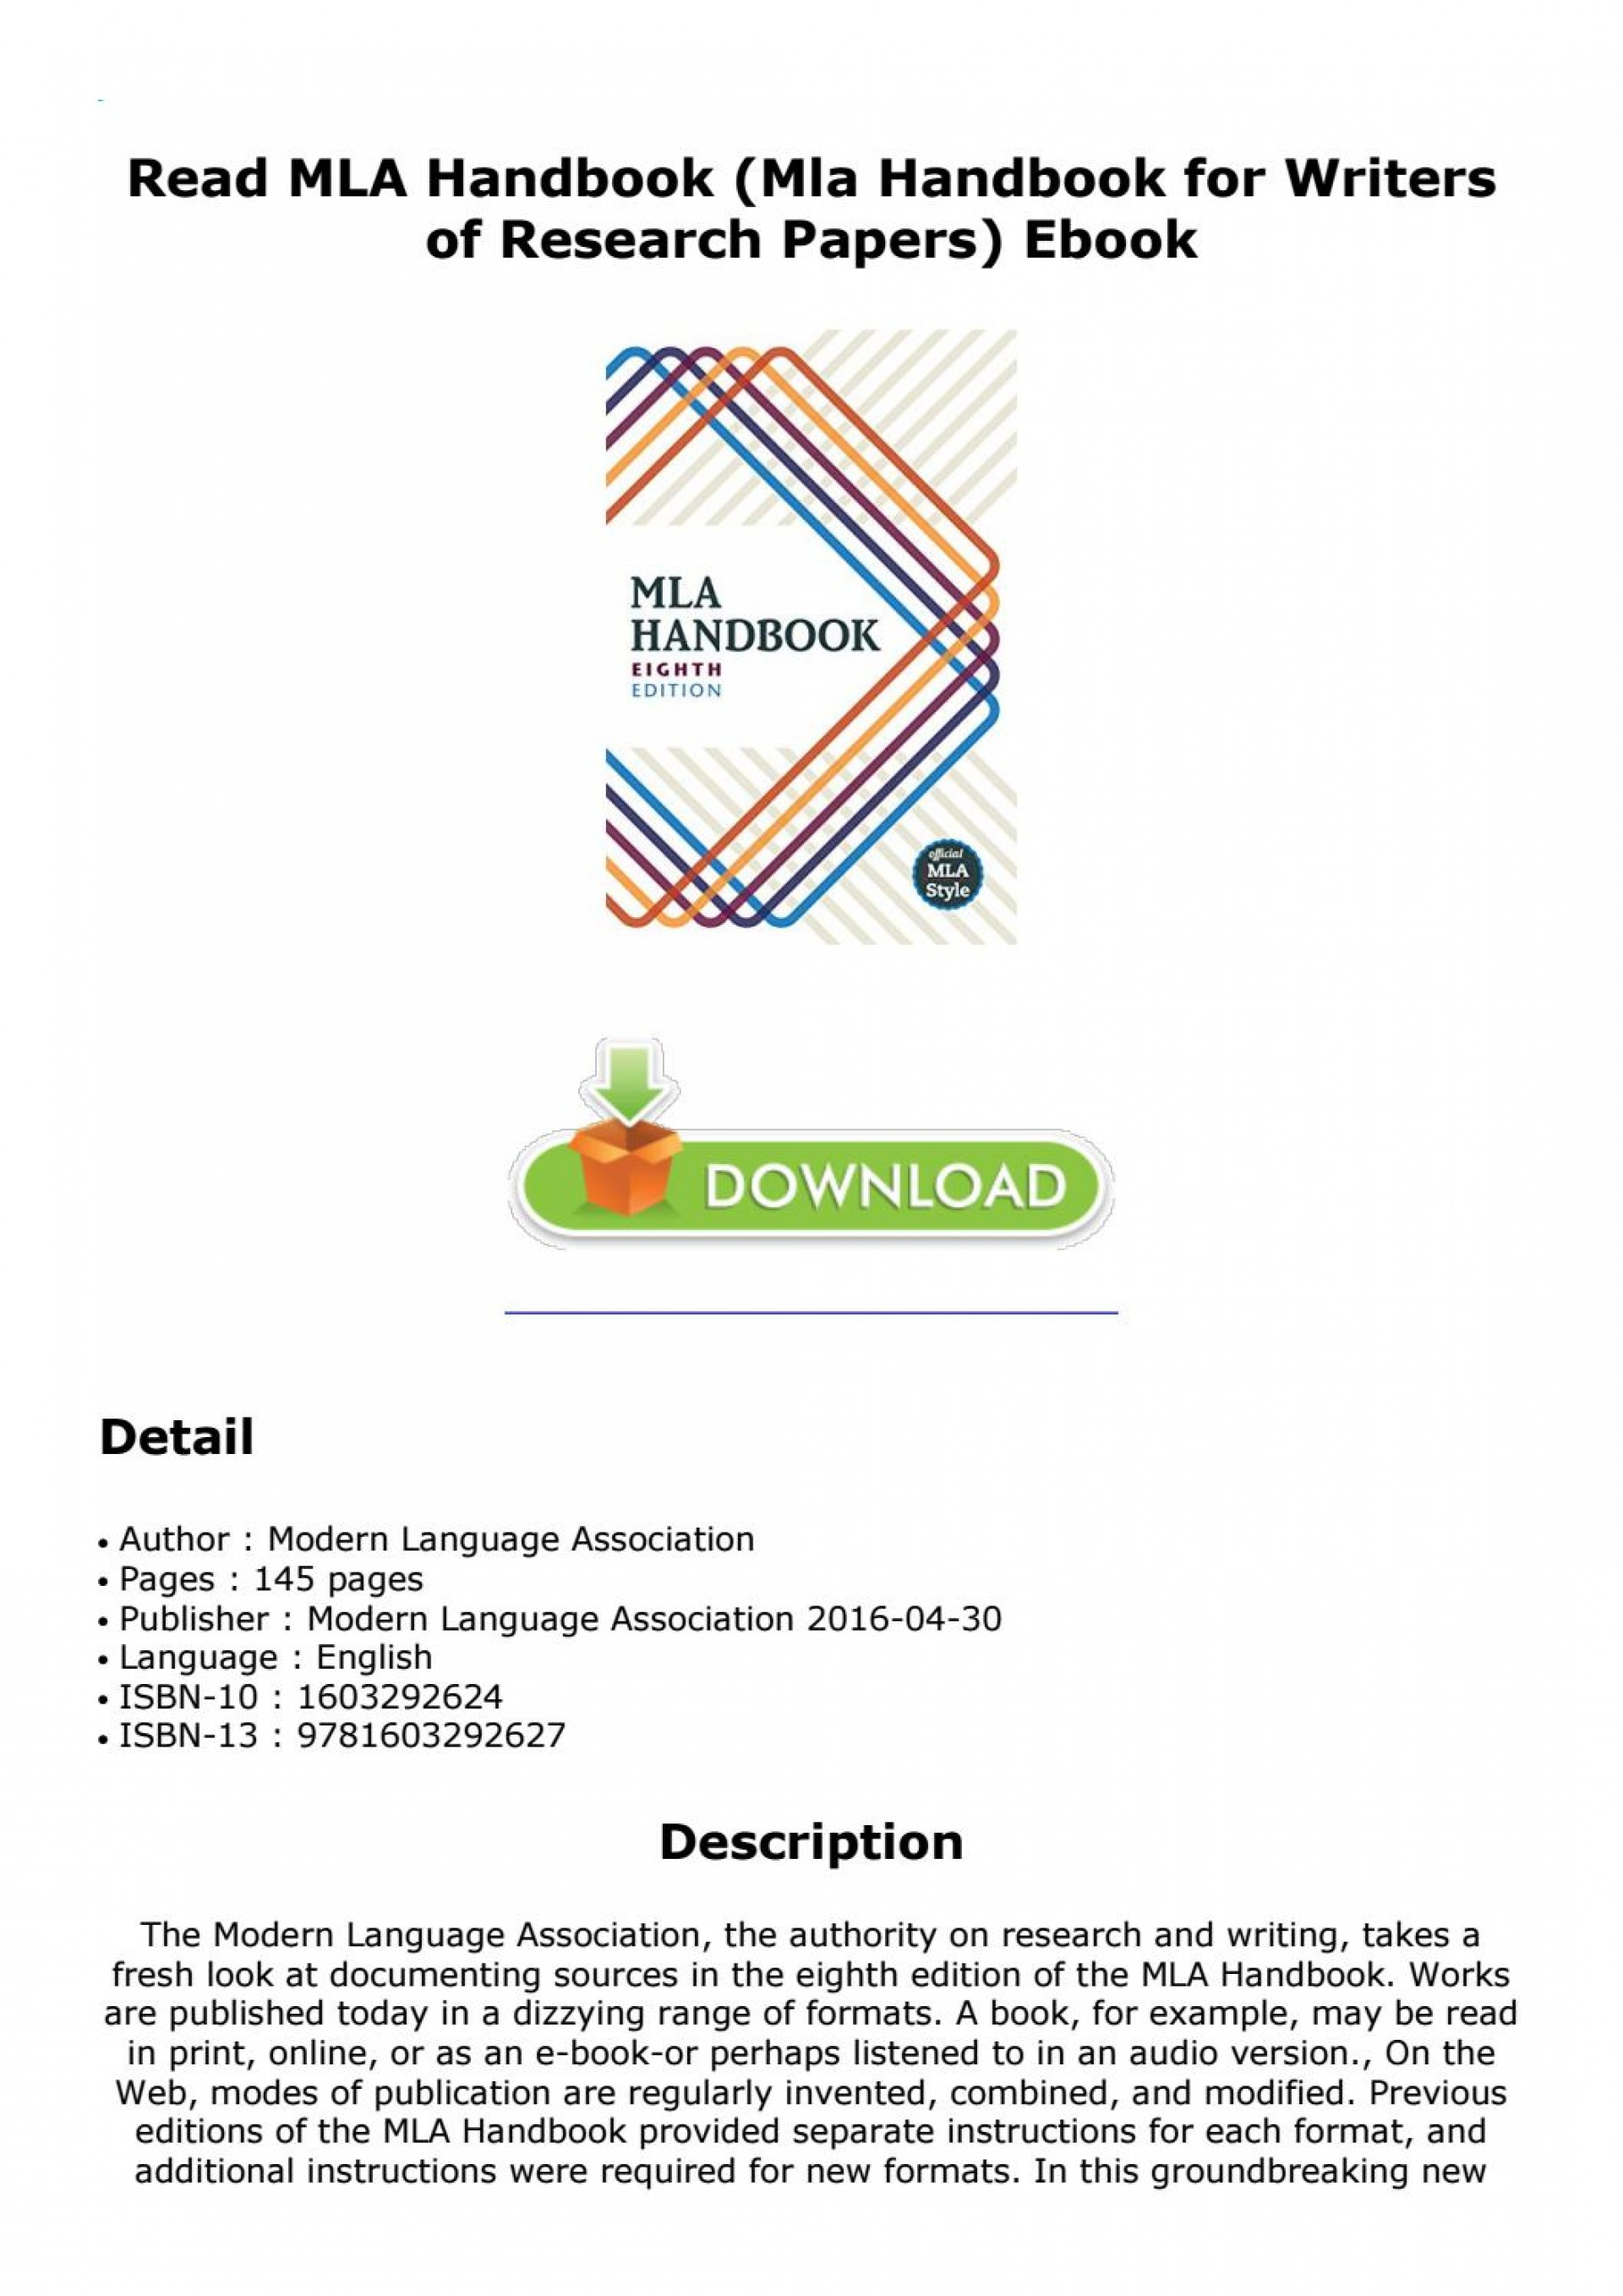 018 Research Paper Mla Handbook For Writers Of Papers 8th Edition Page 1 Unique Pdf Free Download 1920